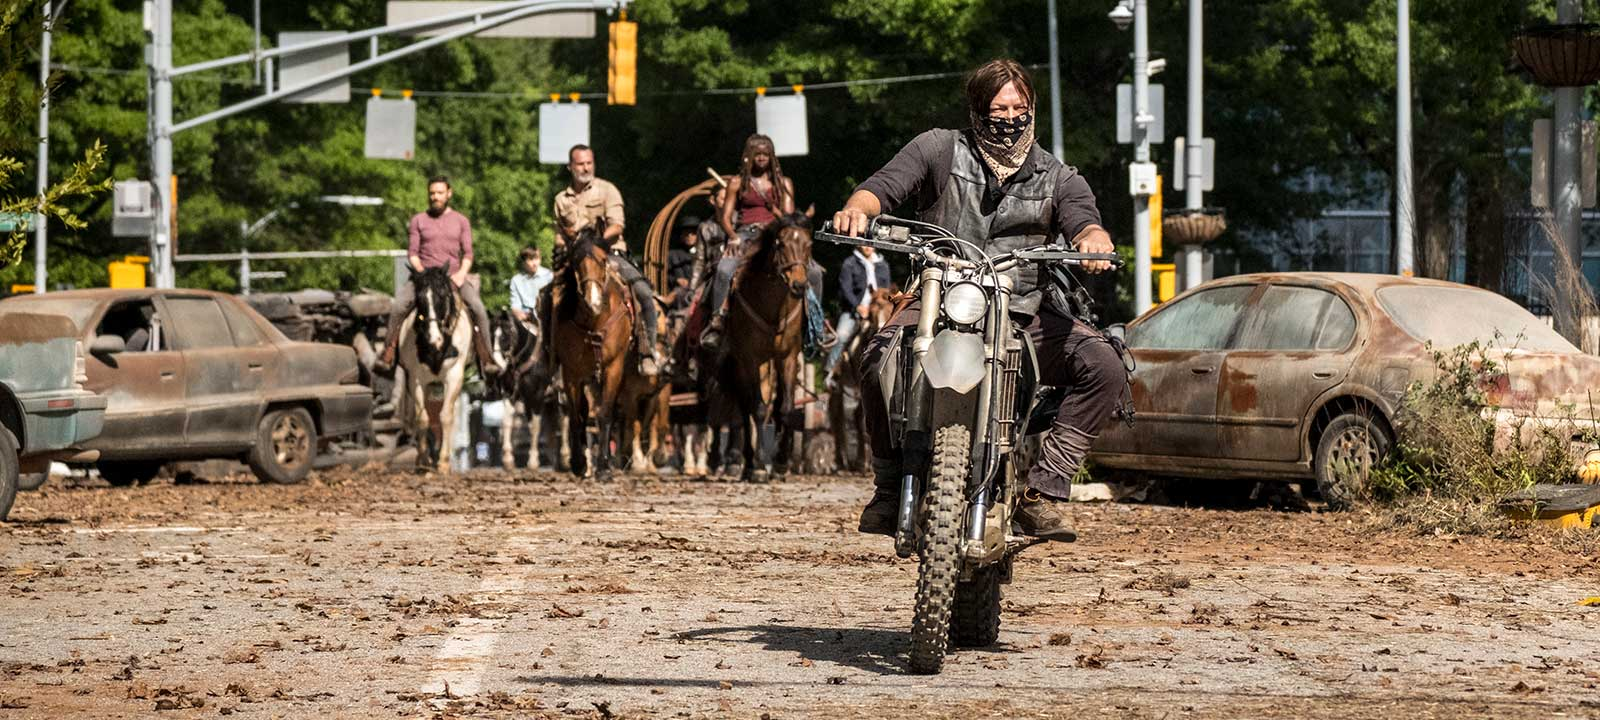 the-walking-dead-episode-901-daryl-reedus-800×600-interview